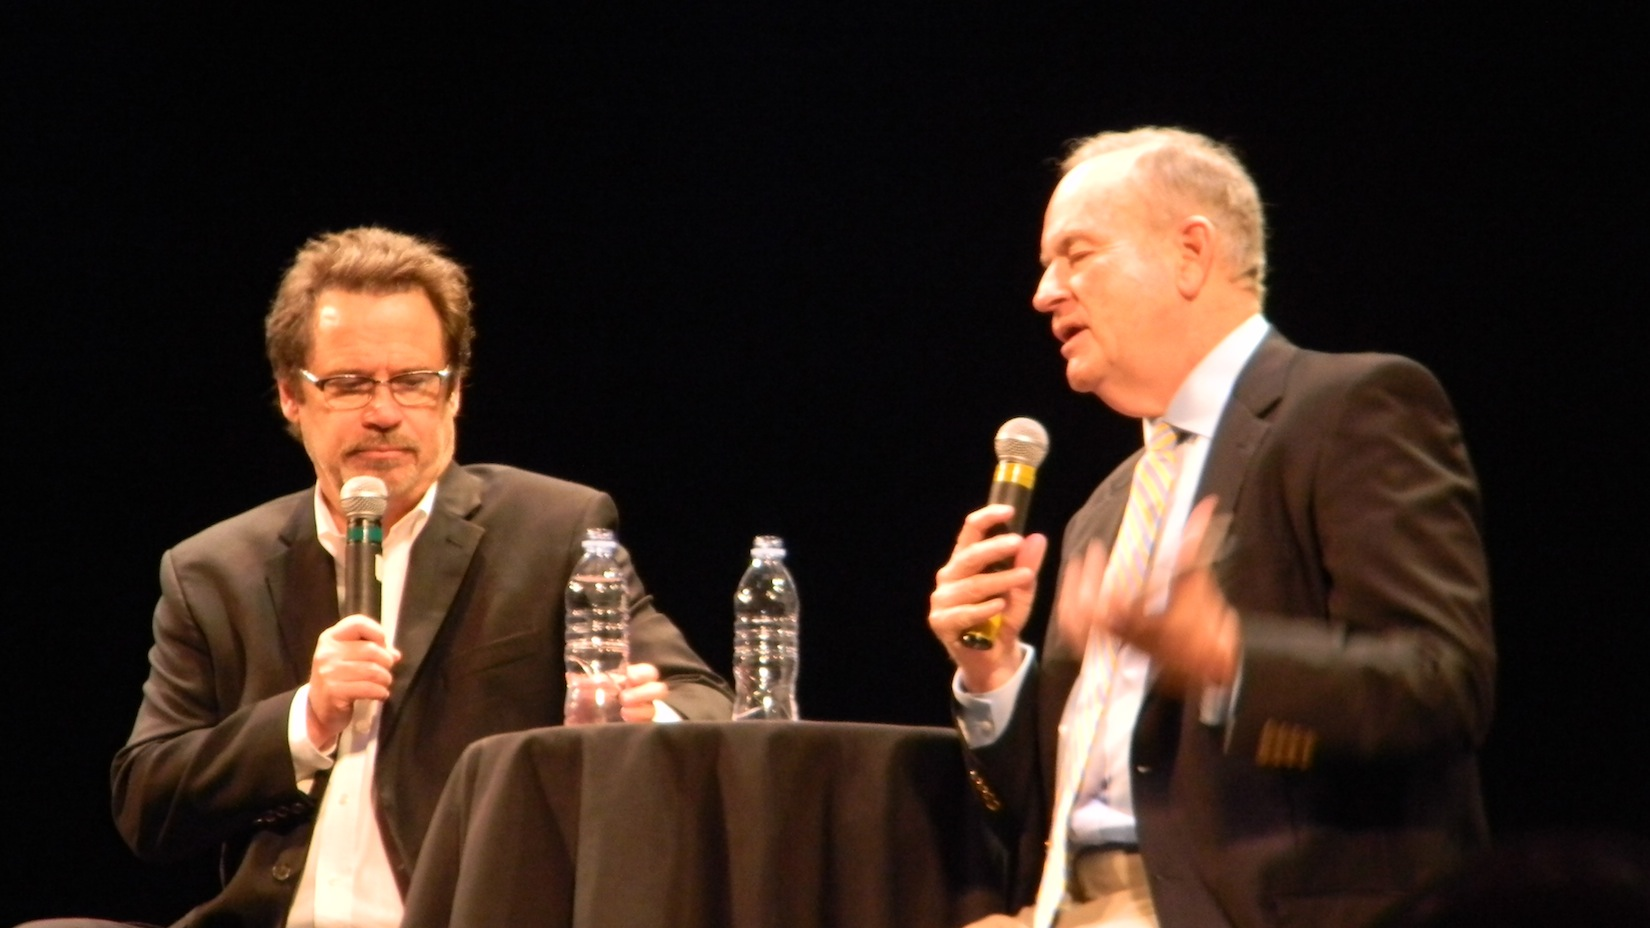 Dennis Miller and Bill O'Reilly.